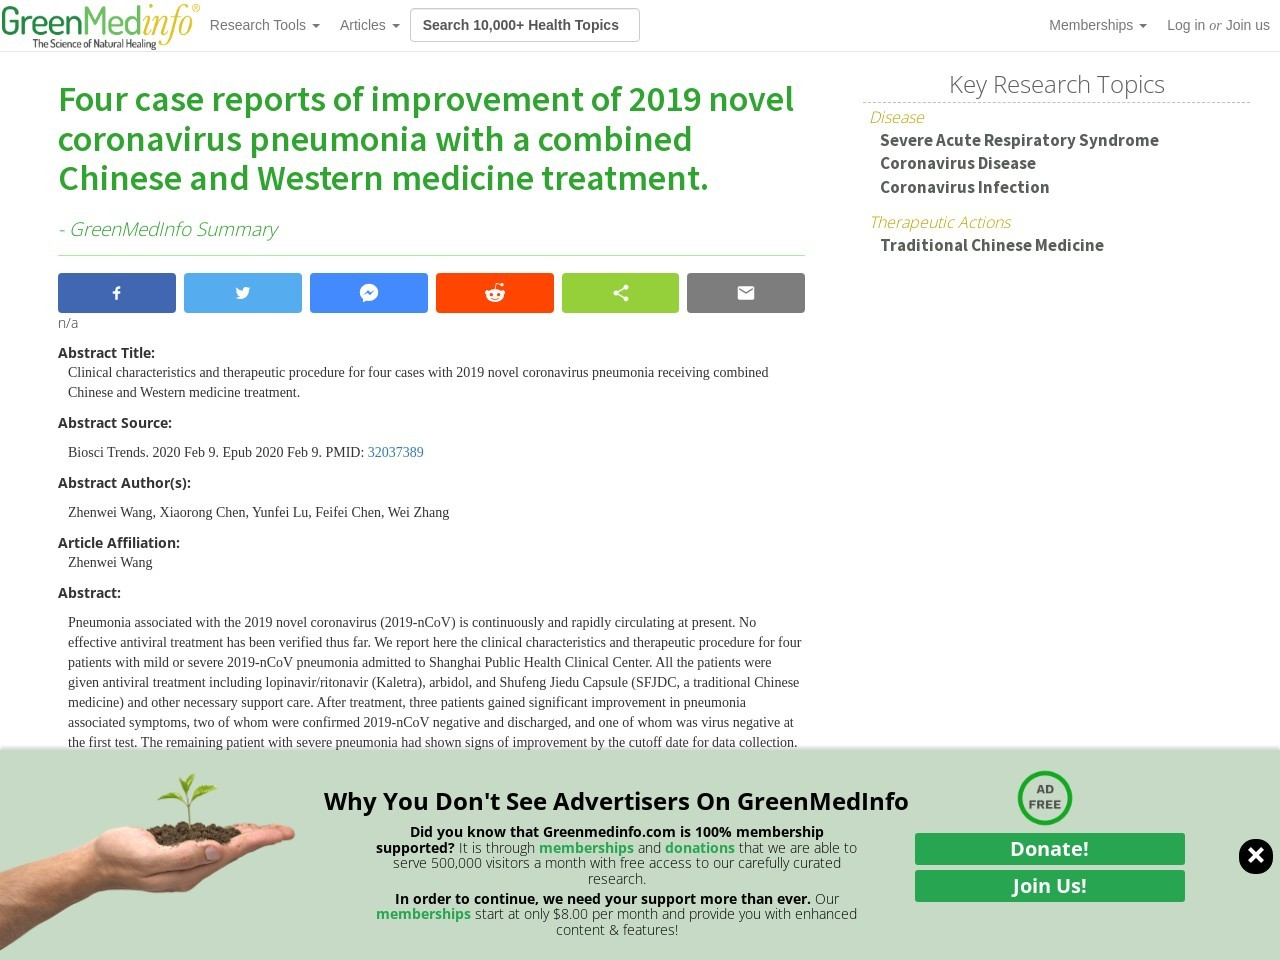 Four case reports of improvement of 2019 novel coronavirus pneumonia with a combined Chinese and Western medicine treatment.